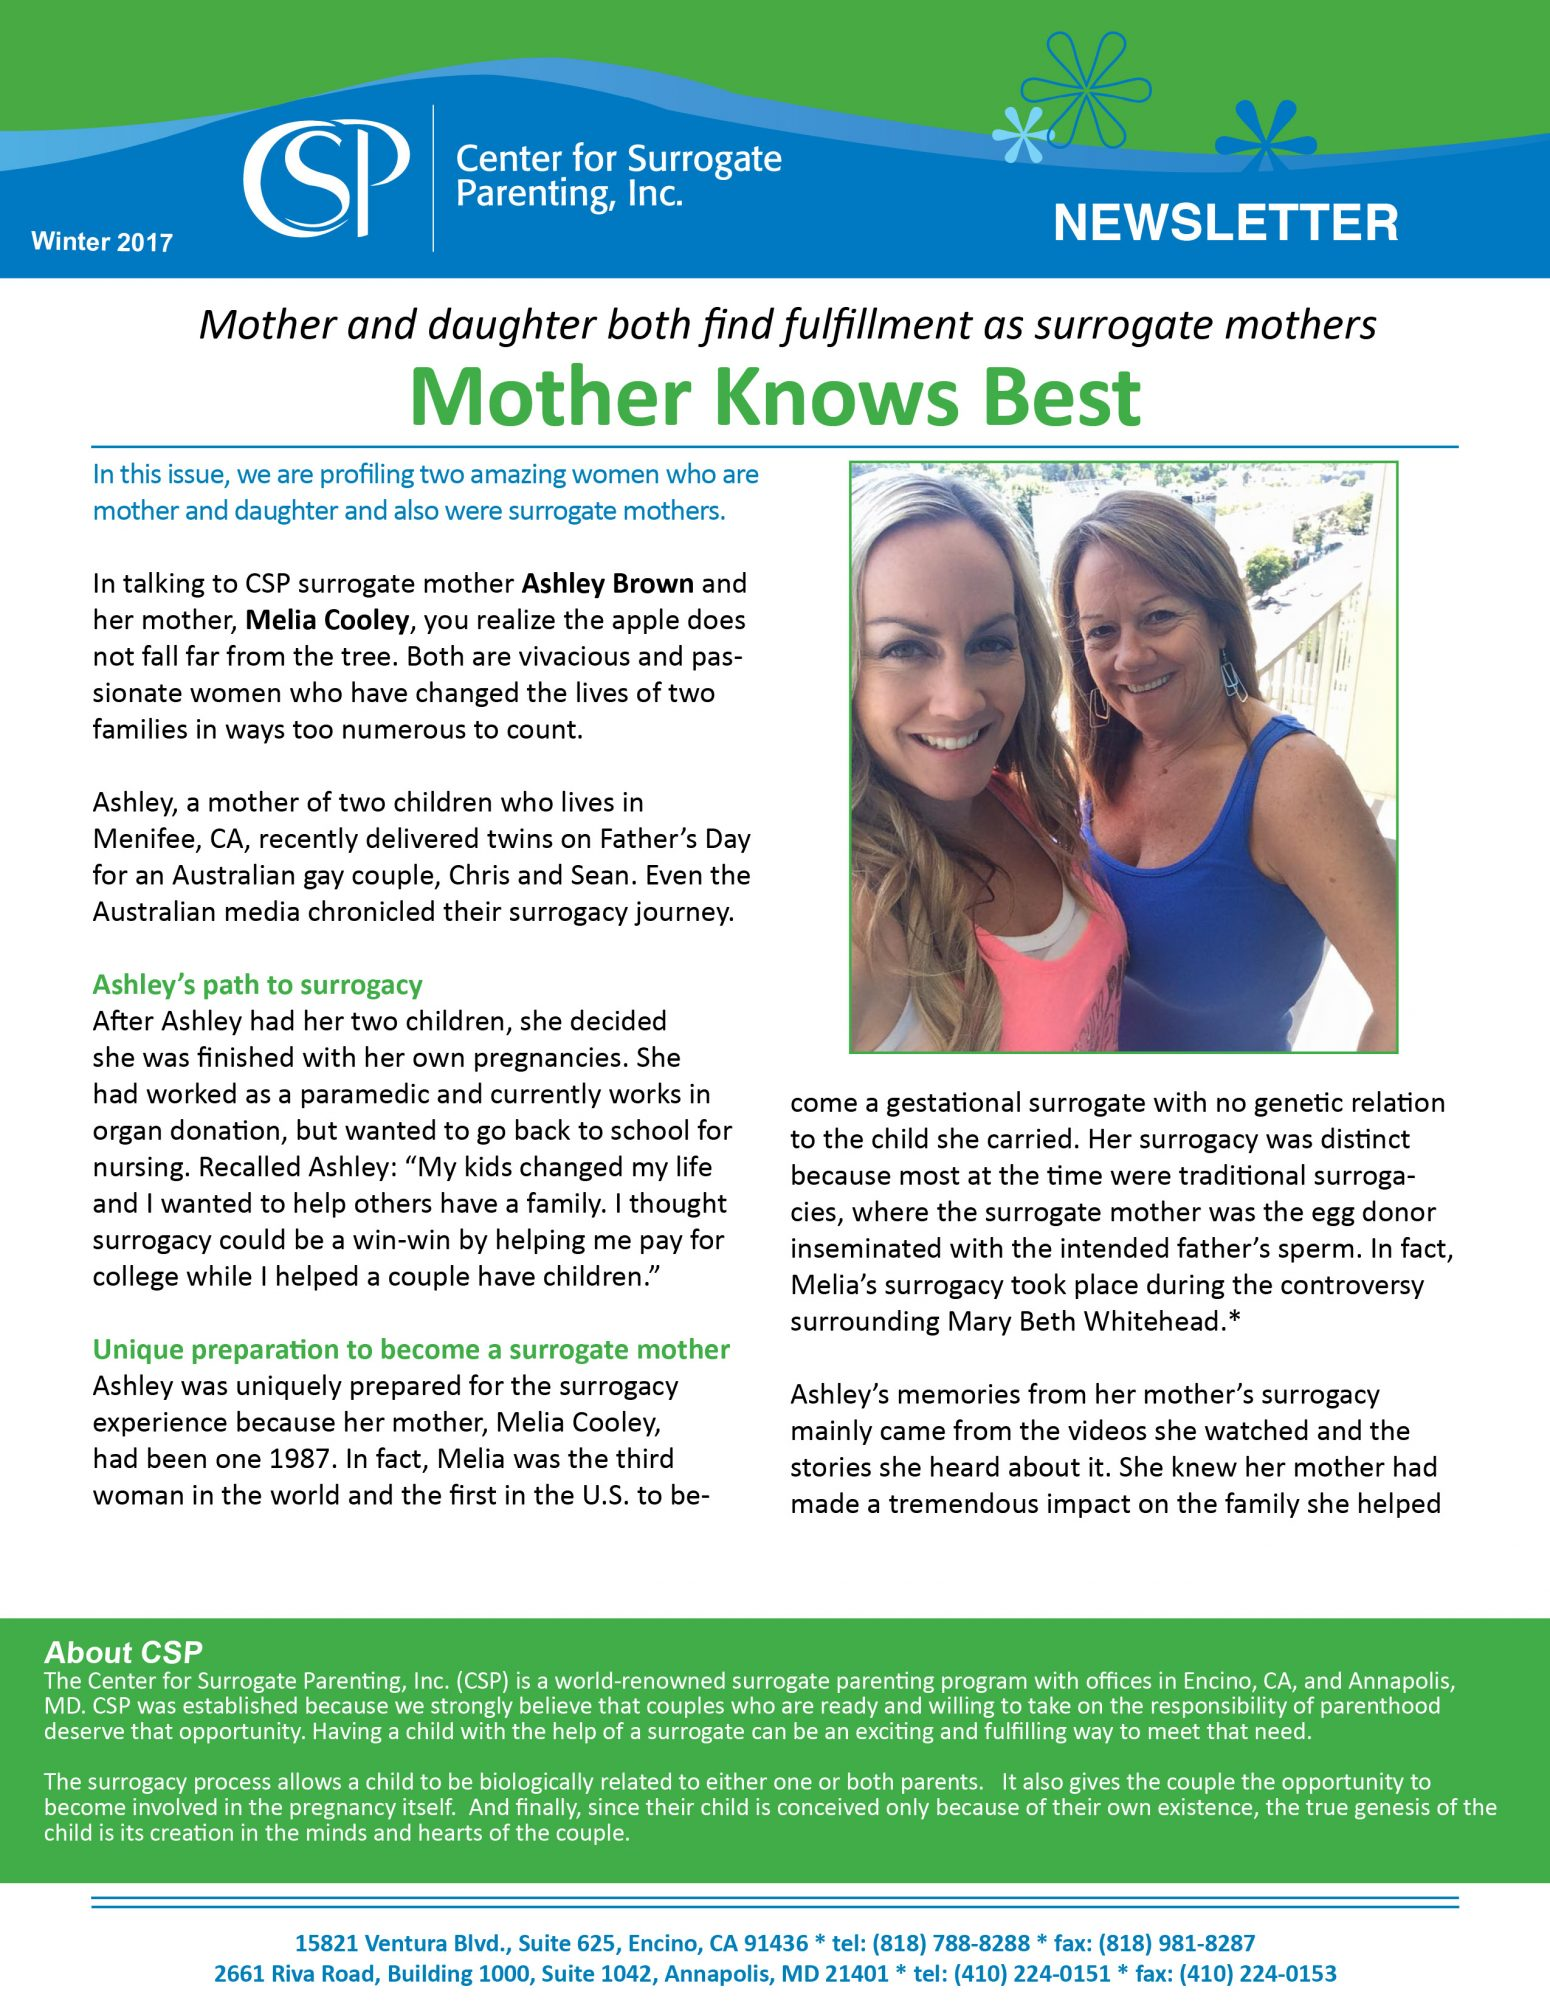 the process of surrogate parenting and its prevalent issues